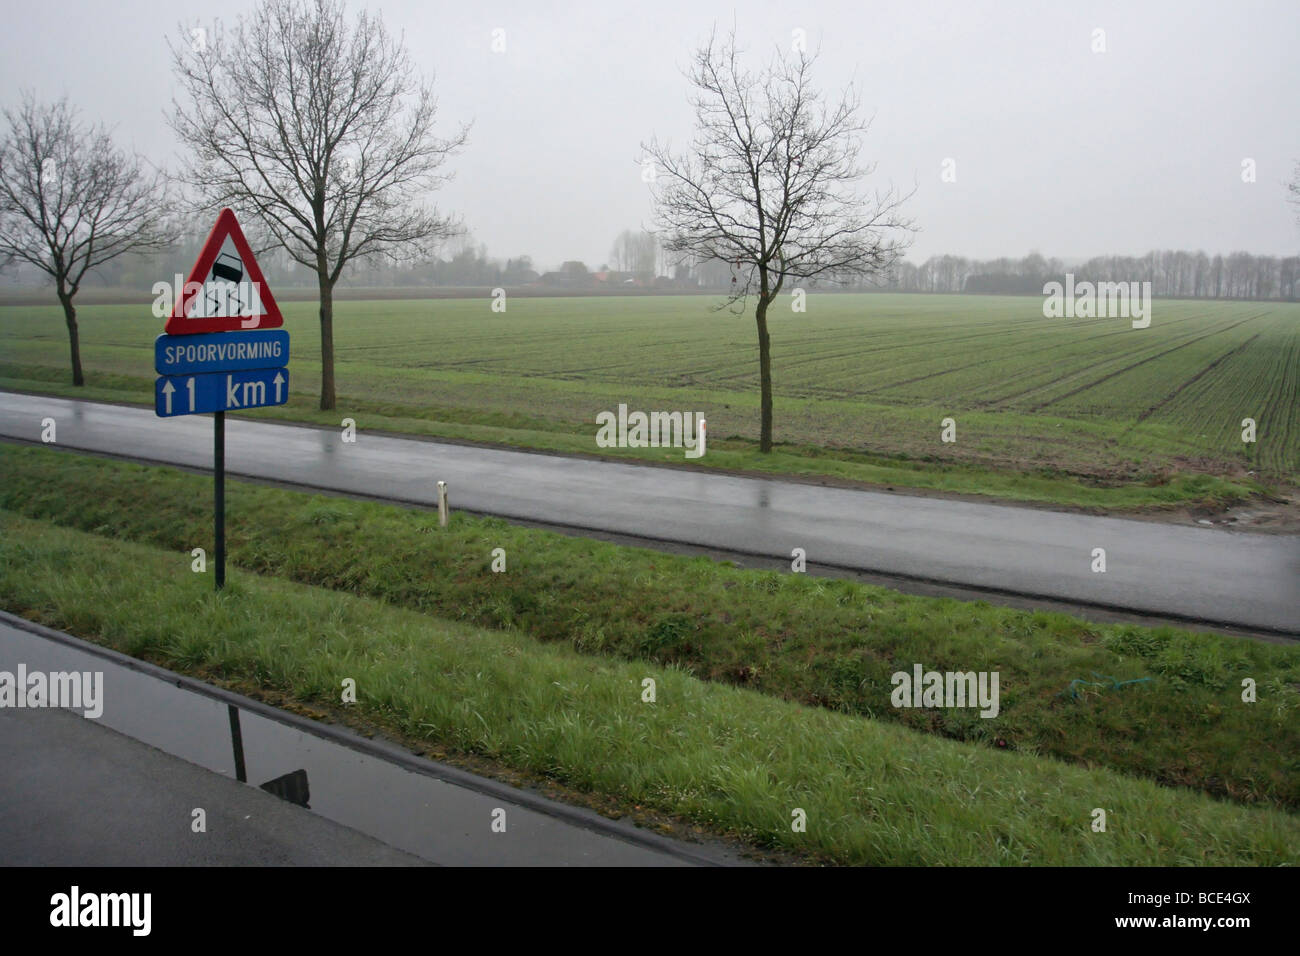 Slippery road warning in Europe. - Stock Image